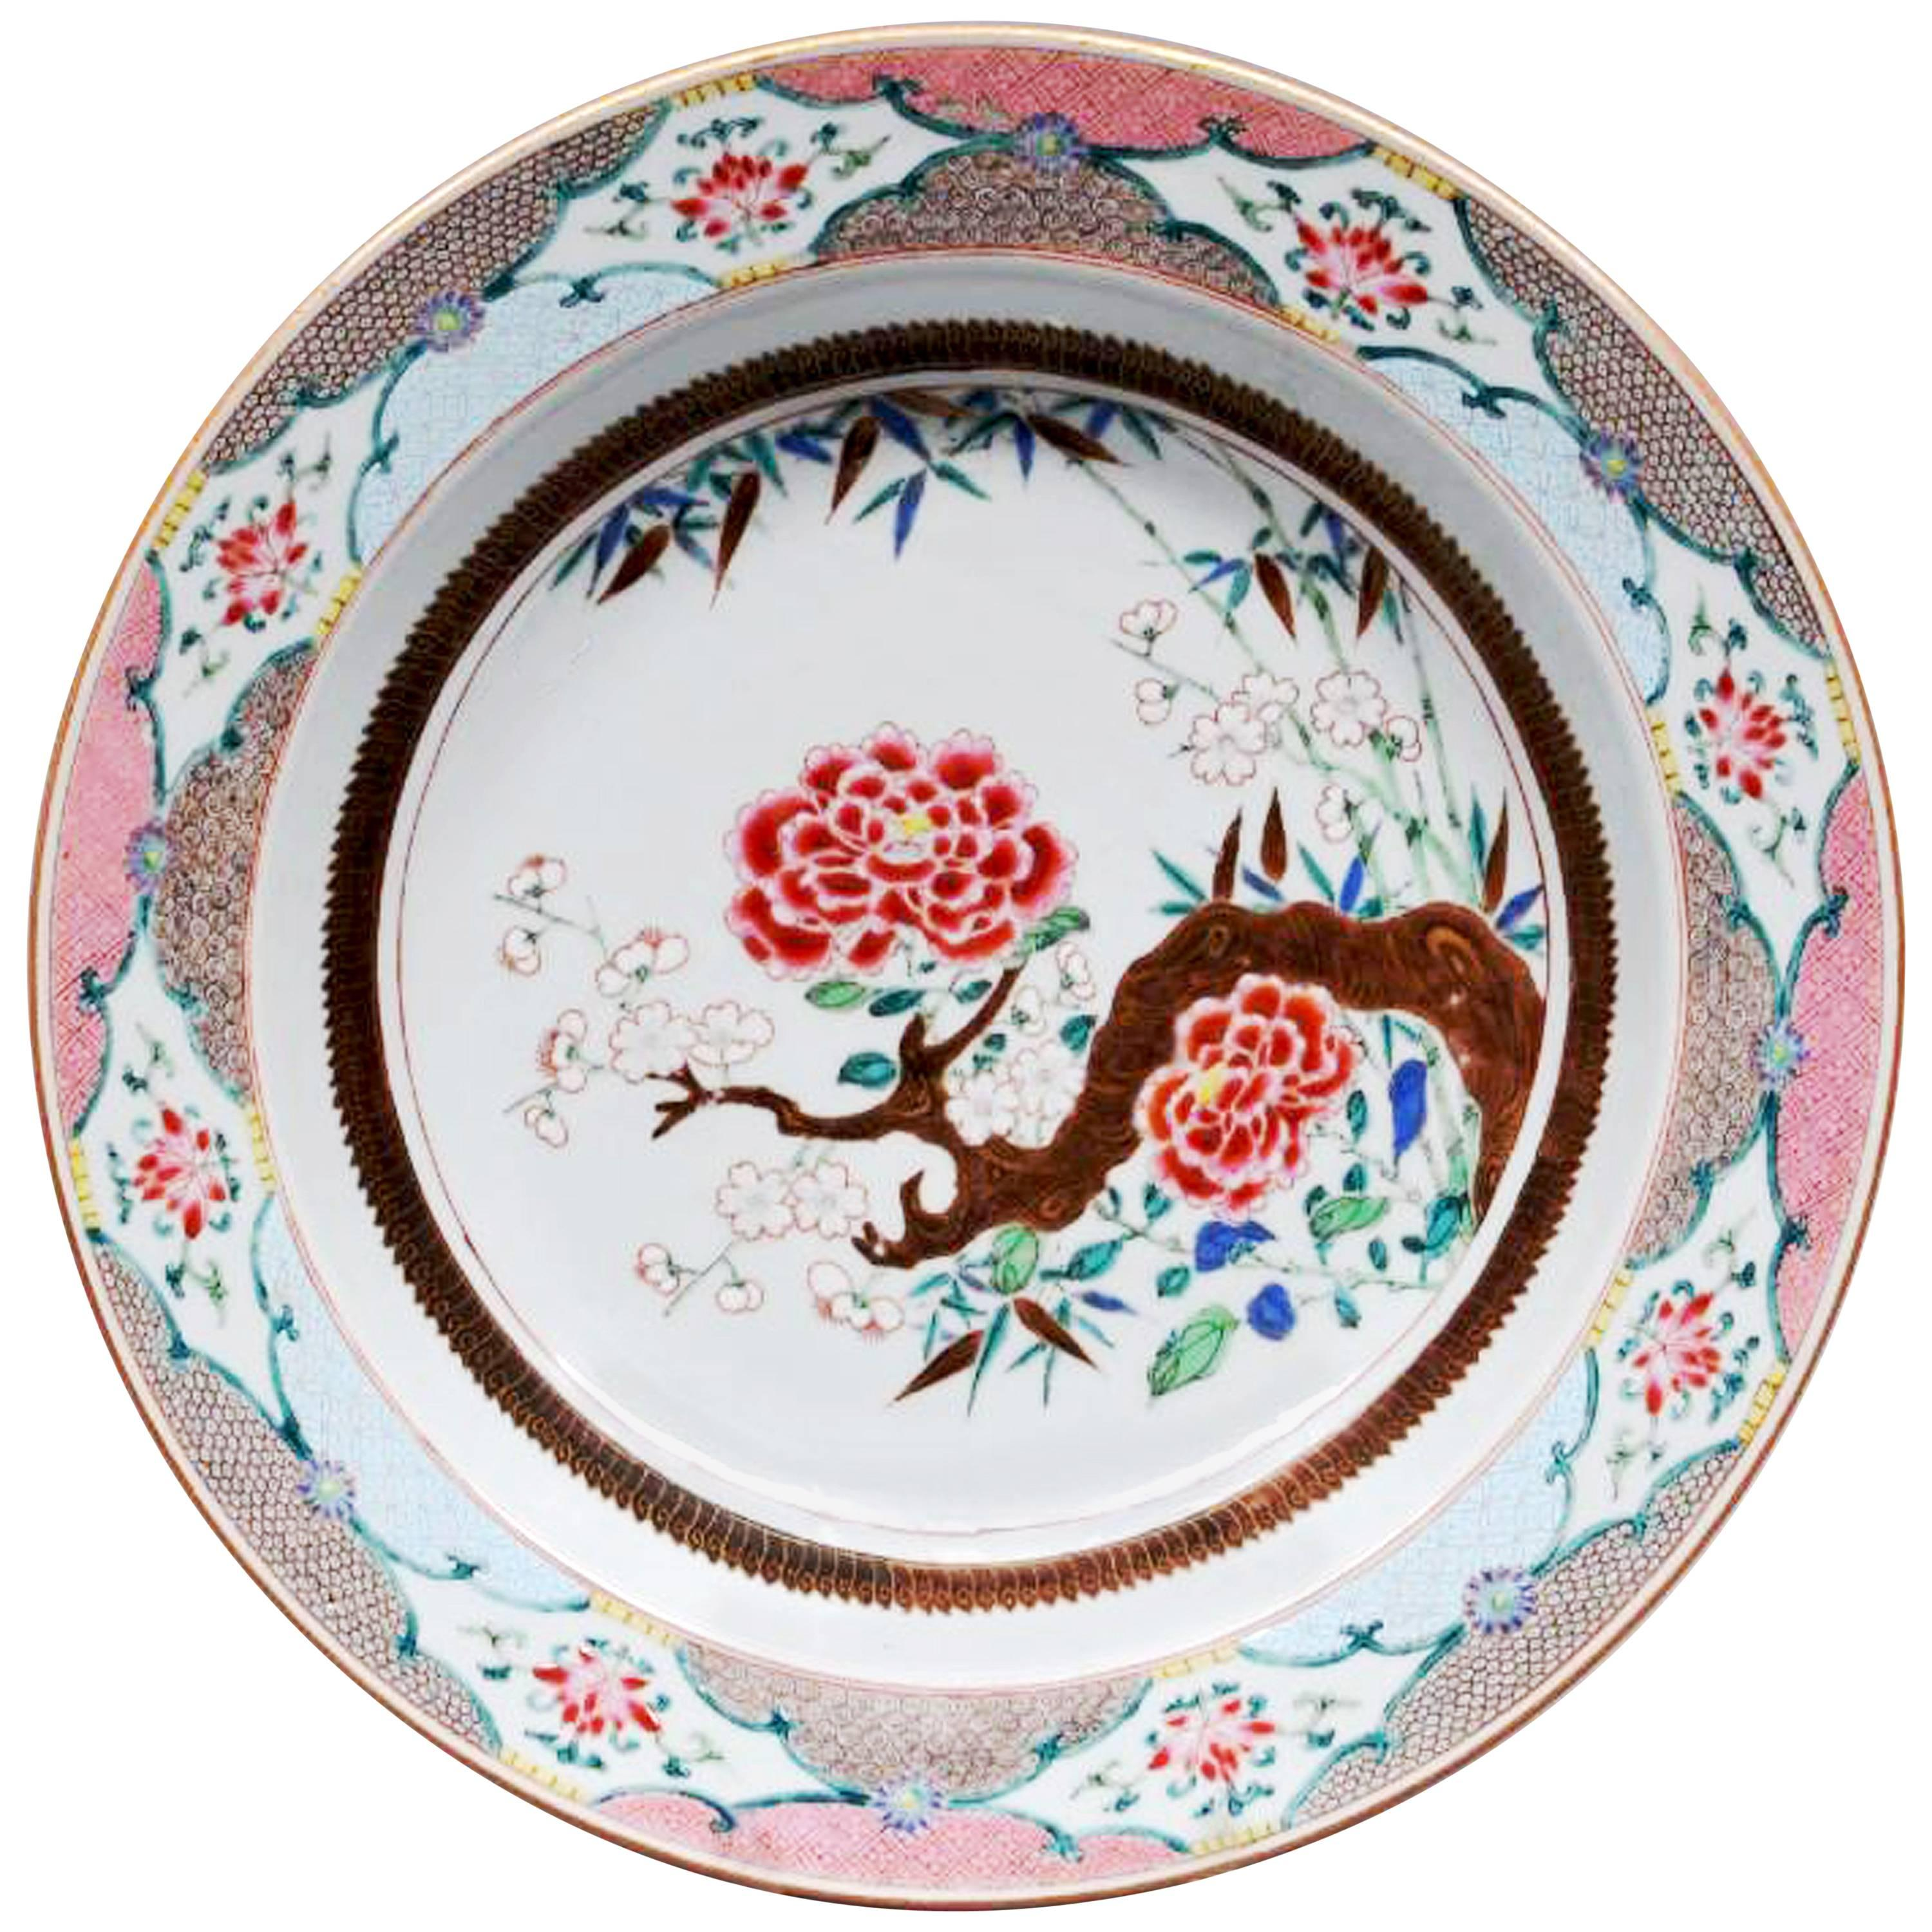 Chinese Export Famille Rose Porcelain Basin, Mid-18th Century